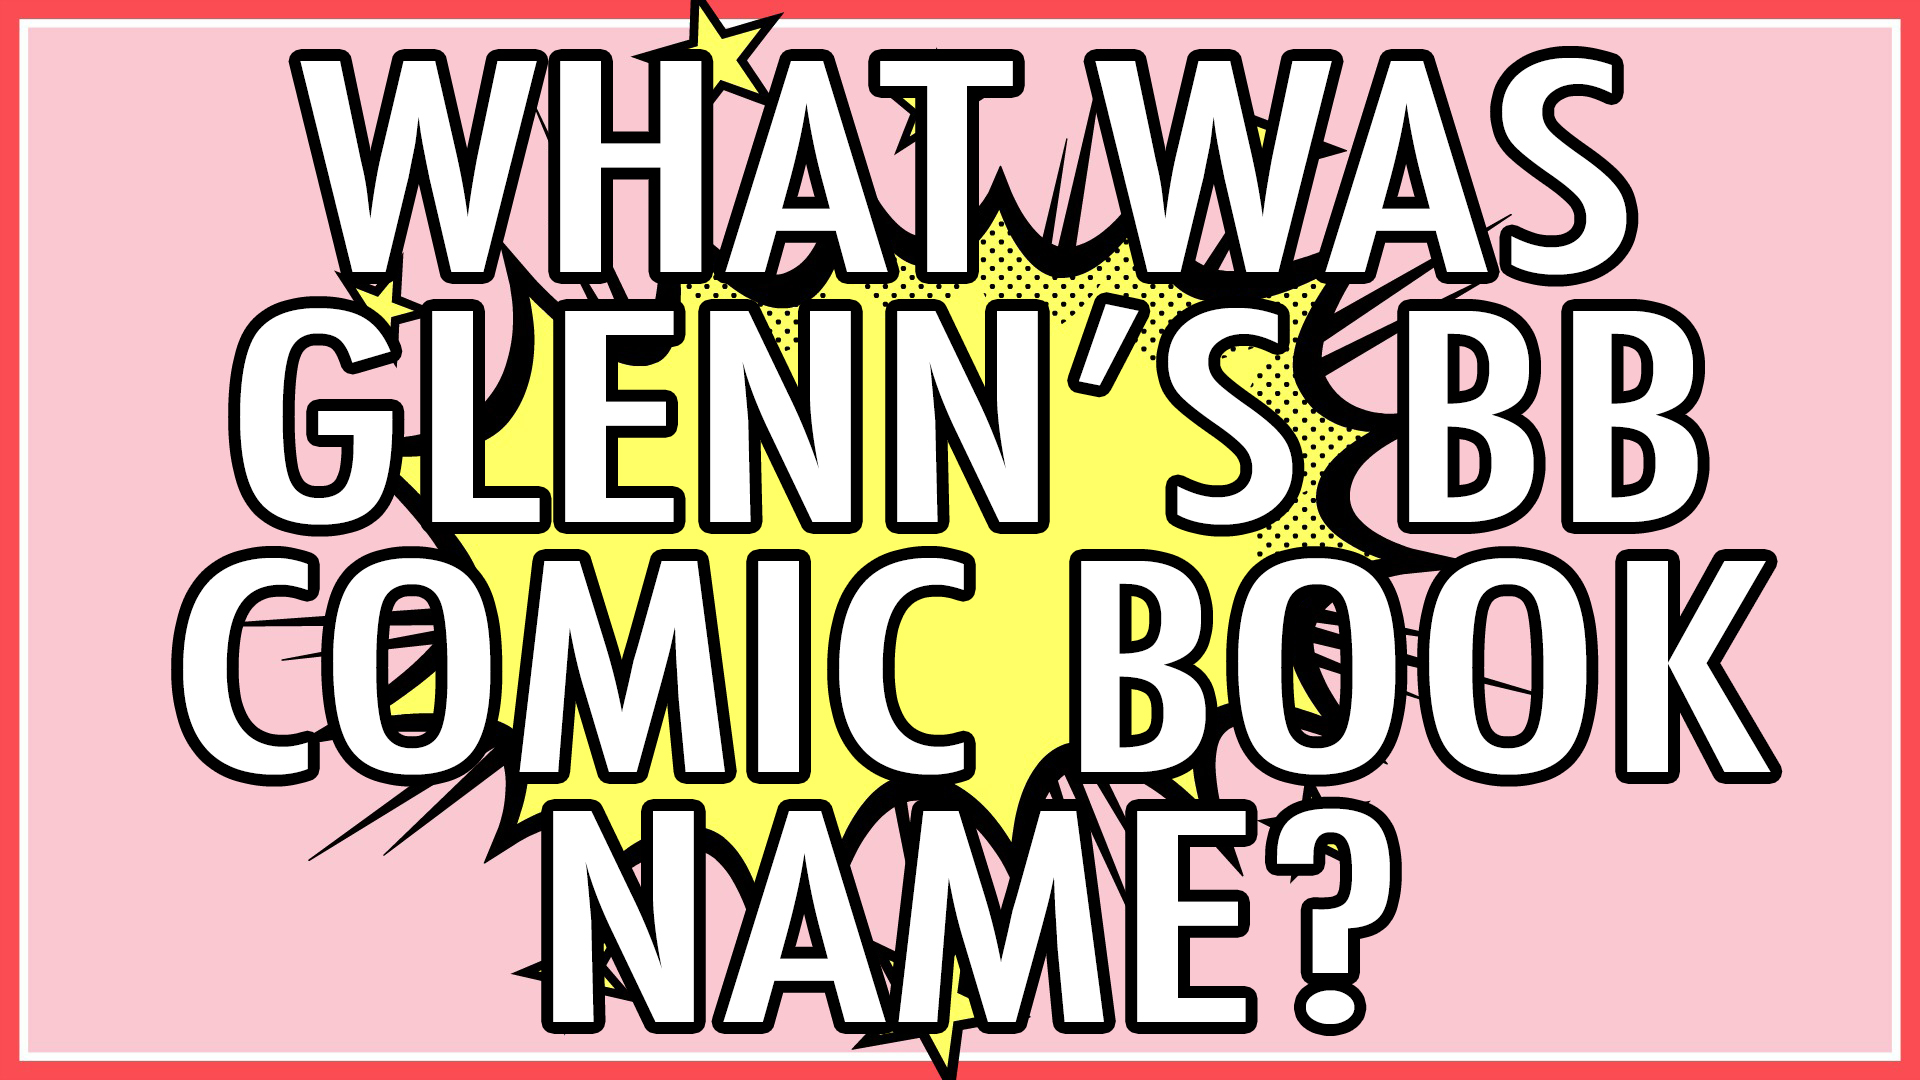 What was Glenn's BB comic book name?